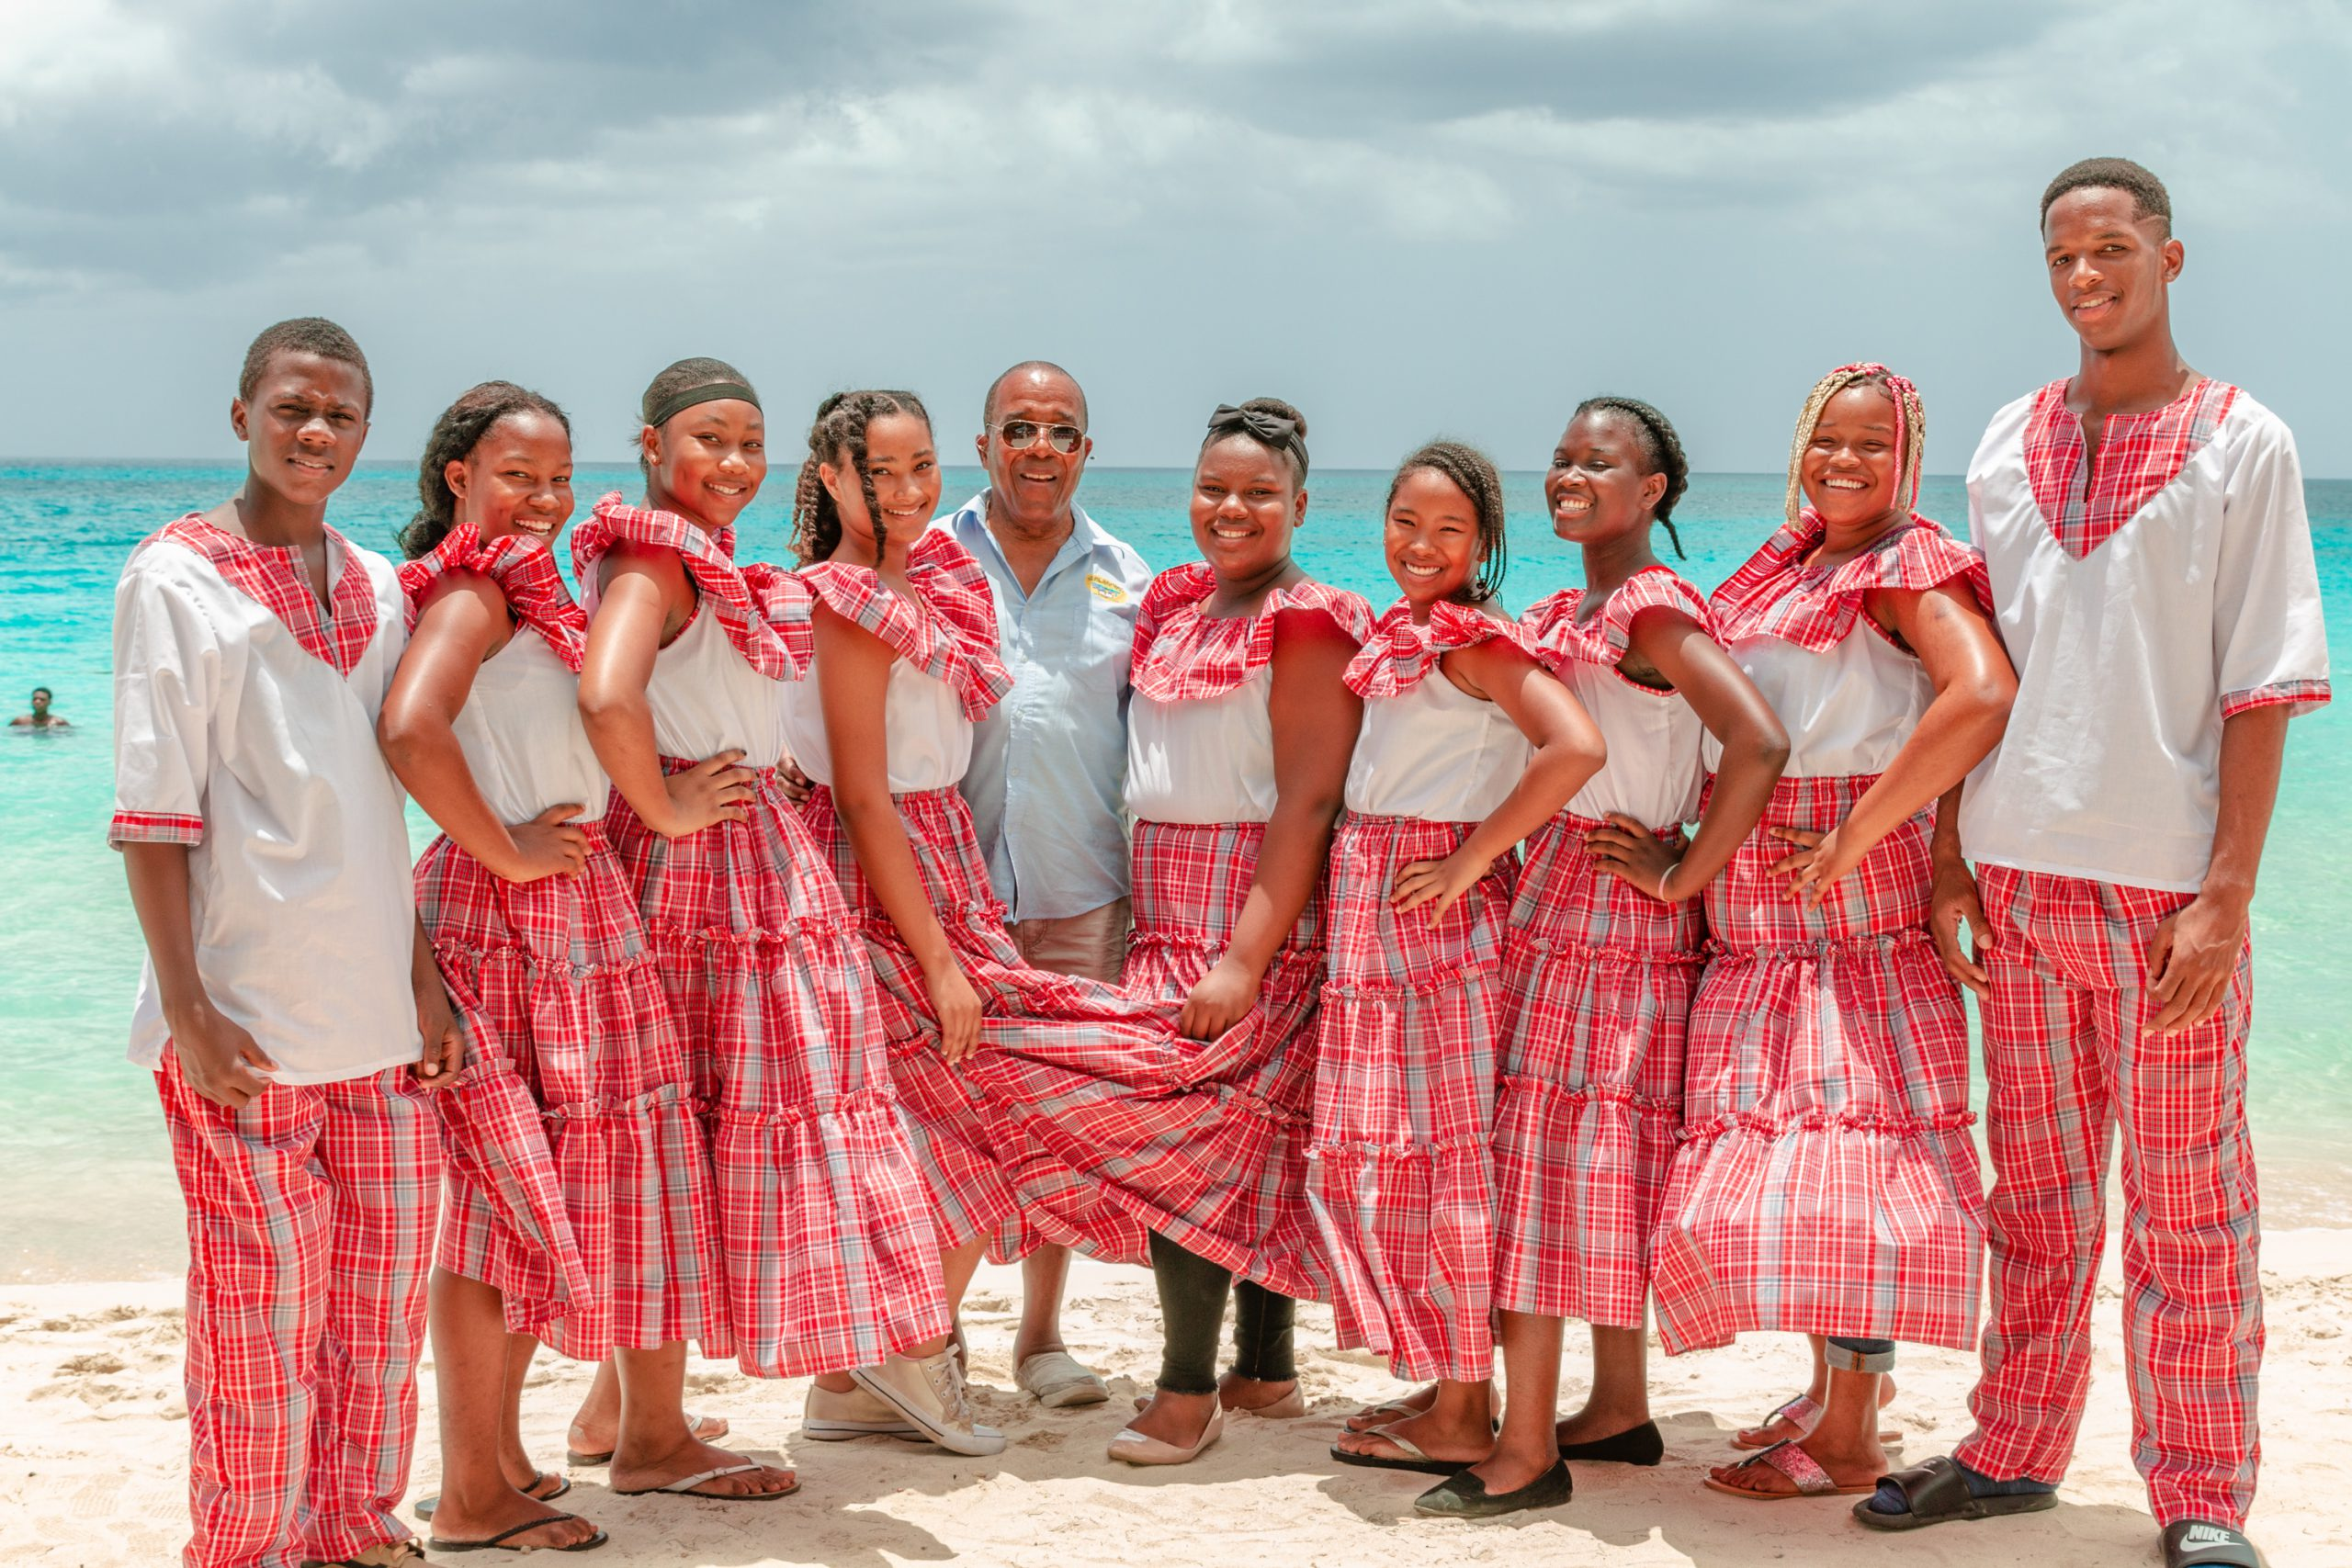 Students dressed in traditional Jamaican clothing